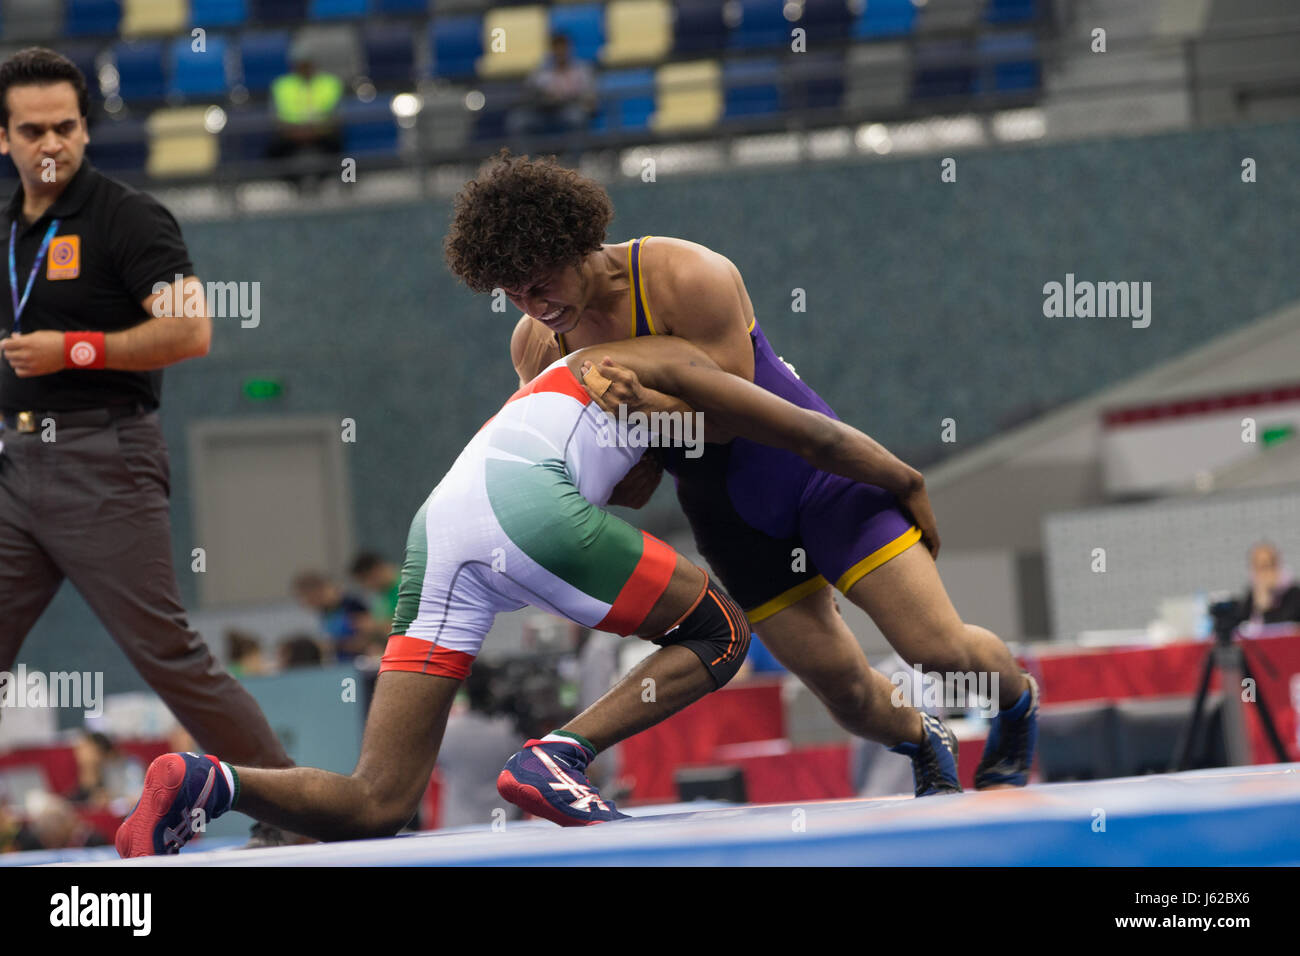 Ibrahim A Abdali Khalil Of Saudi Arabia Competes Against Hussain Abdullah Hus Al Azzani Yemen In The Mens Freestyle Wrestling 65kg Repechage During Day